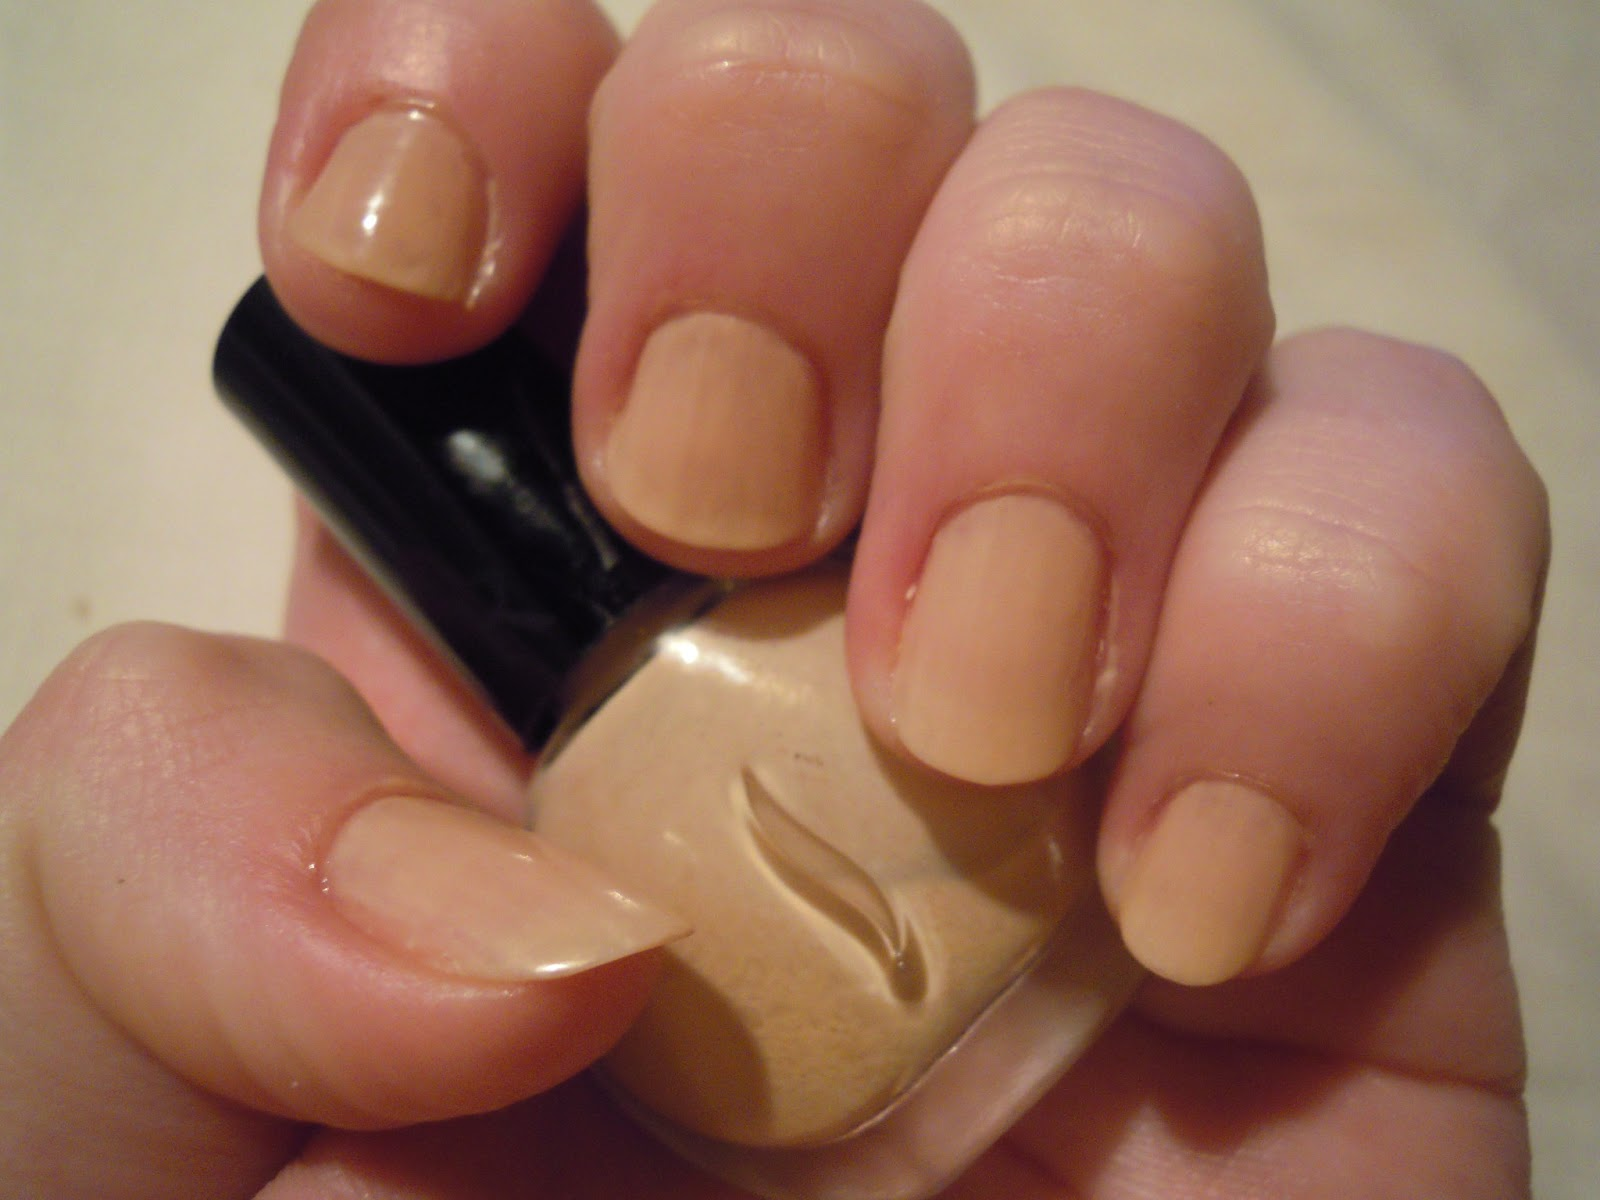 Picture of Sephora nail varnish in Where's My purse?